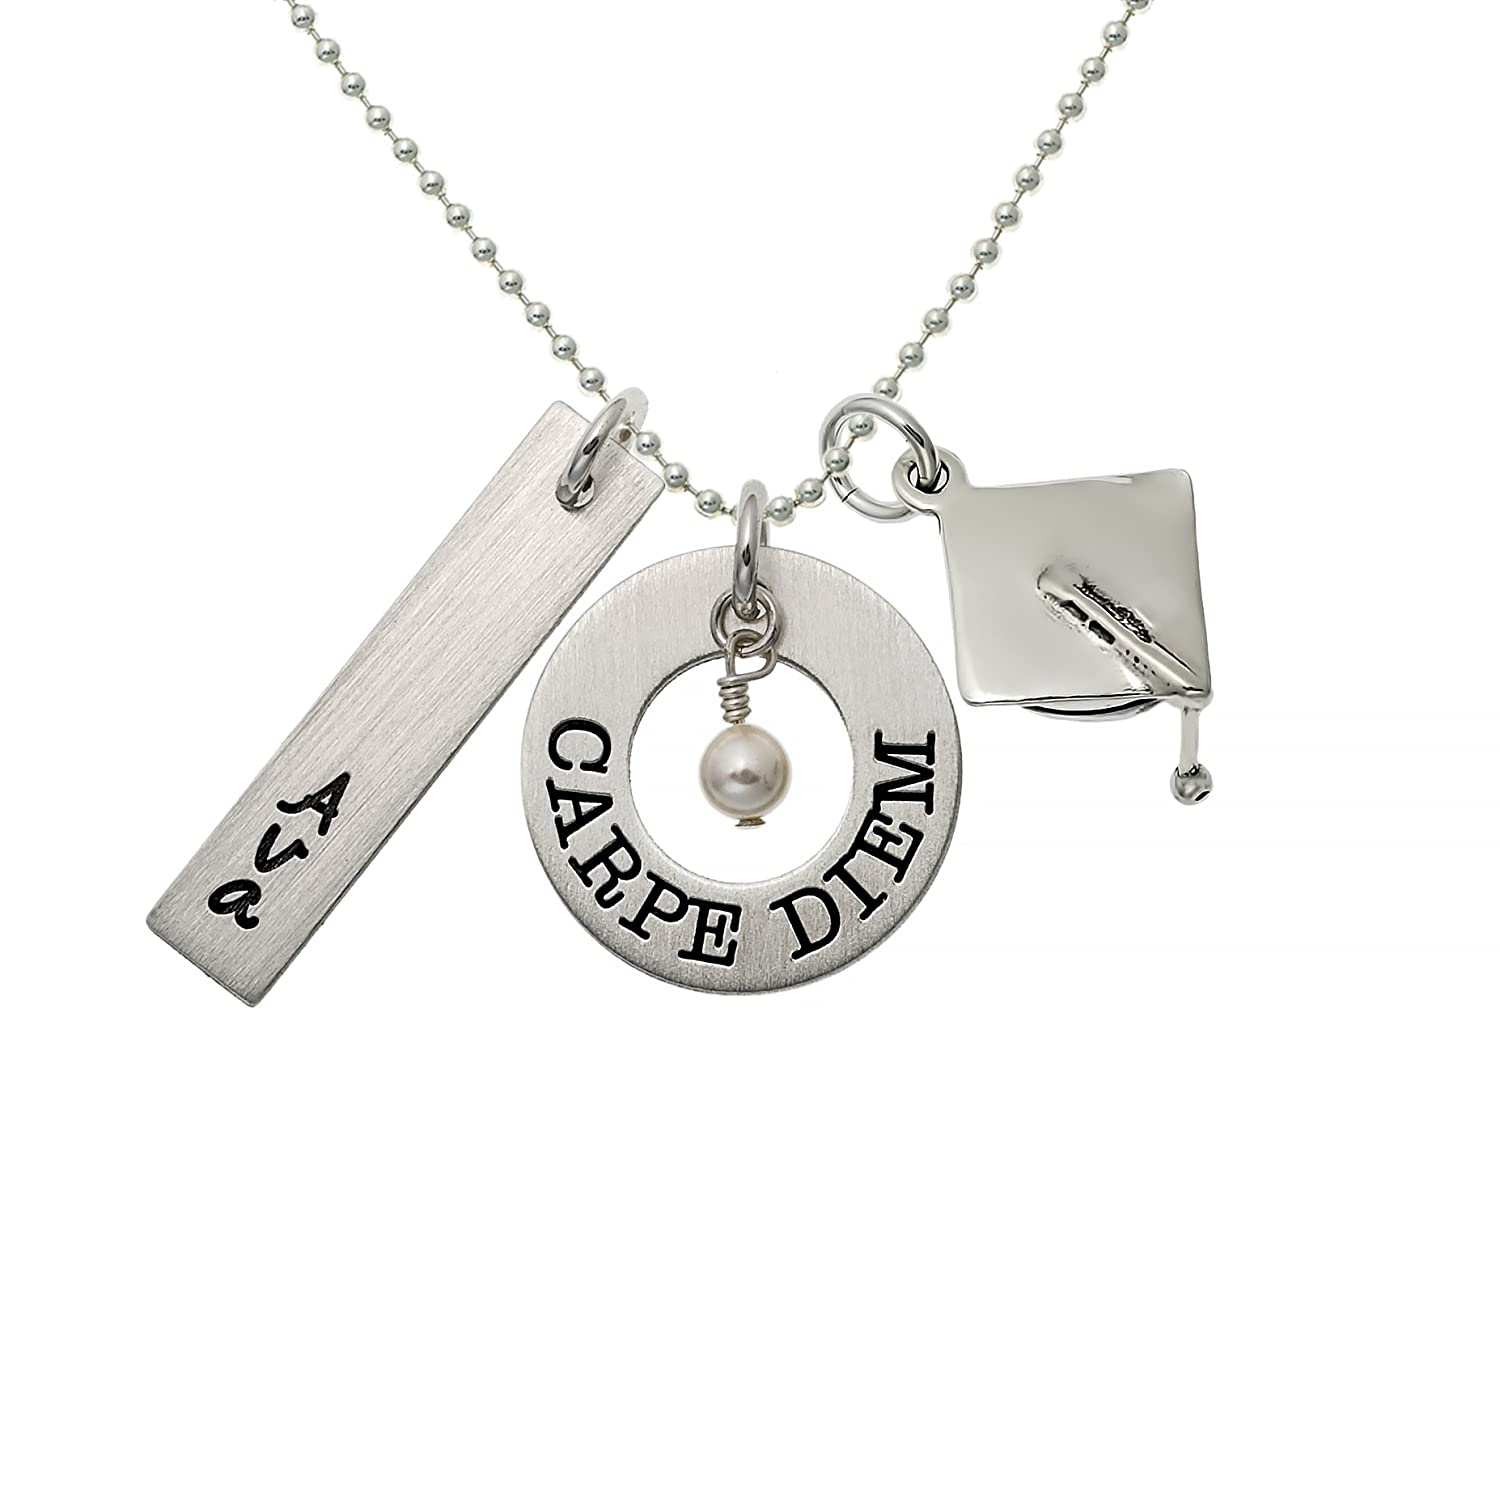 Choice of Sterling Silver Chain Great Gift Idea For Your Kids. Customize a Rectangle Charm Perfect Graduation Gift For Your Loved Ones Personalized Carpe Diem Sterling Silver Graduation Necklace